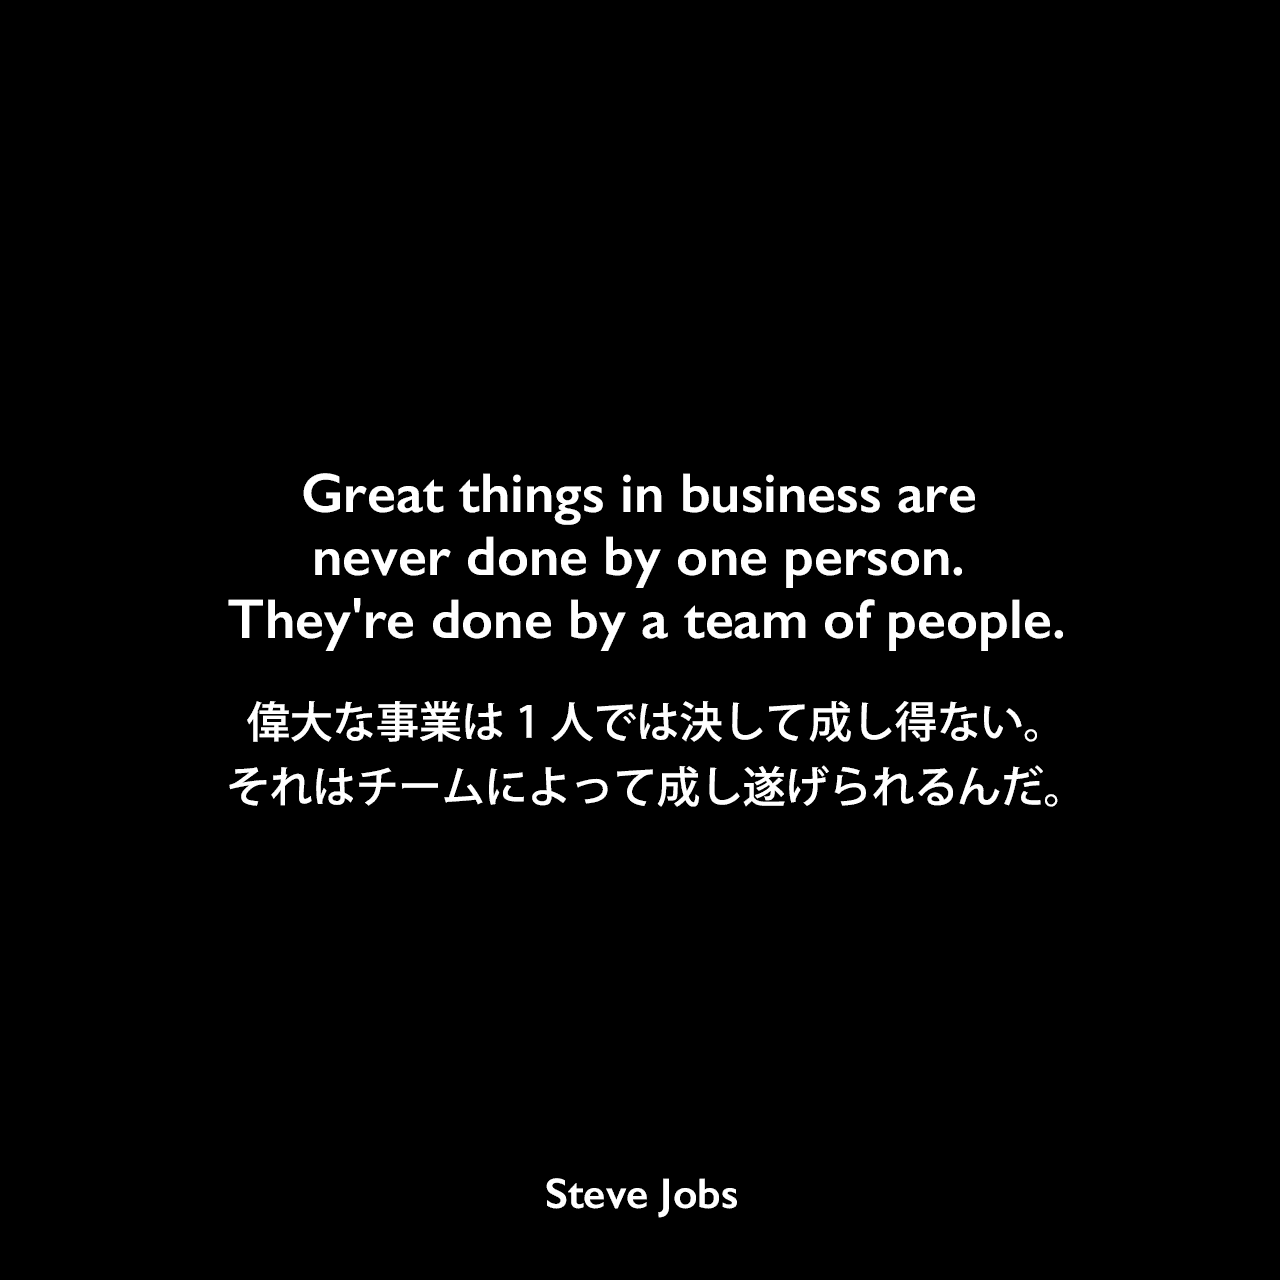 Great things in business are never done by one person. They're done by a team of people.偉大な事業は1人では決して成し得ない。それはチームによって成し遂げられるんだ。Steve Jobs